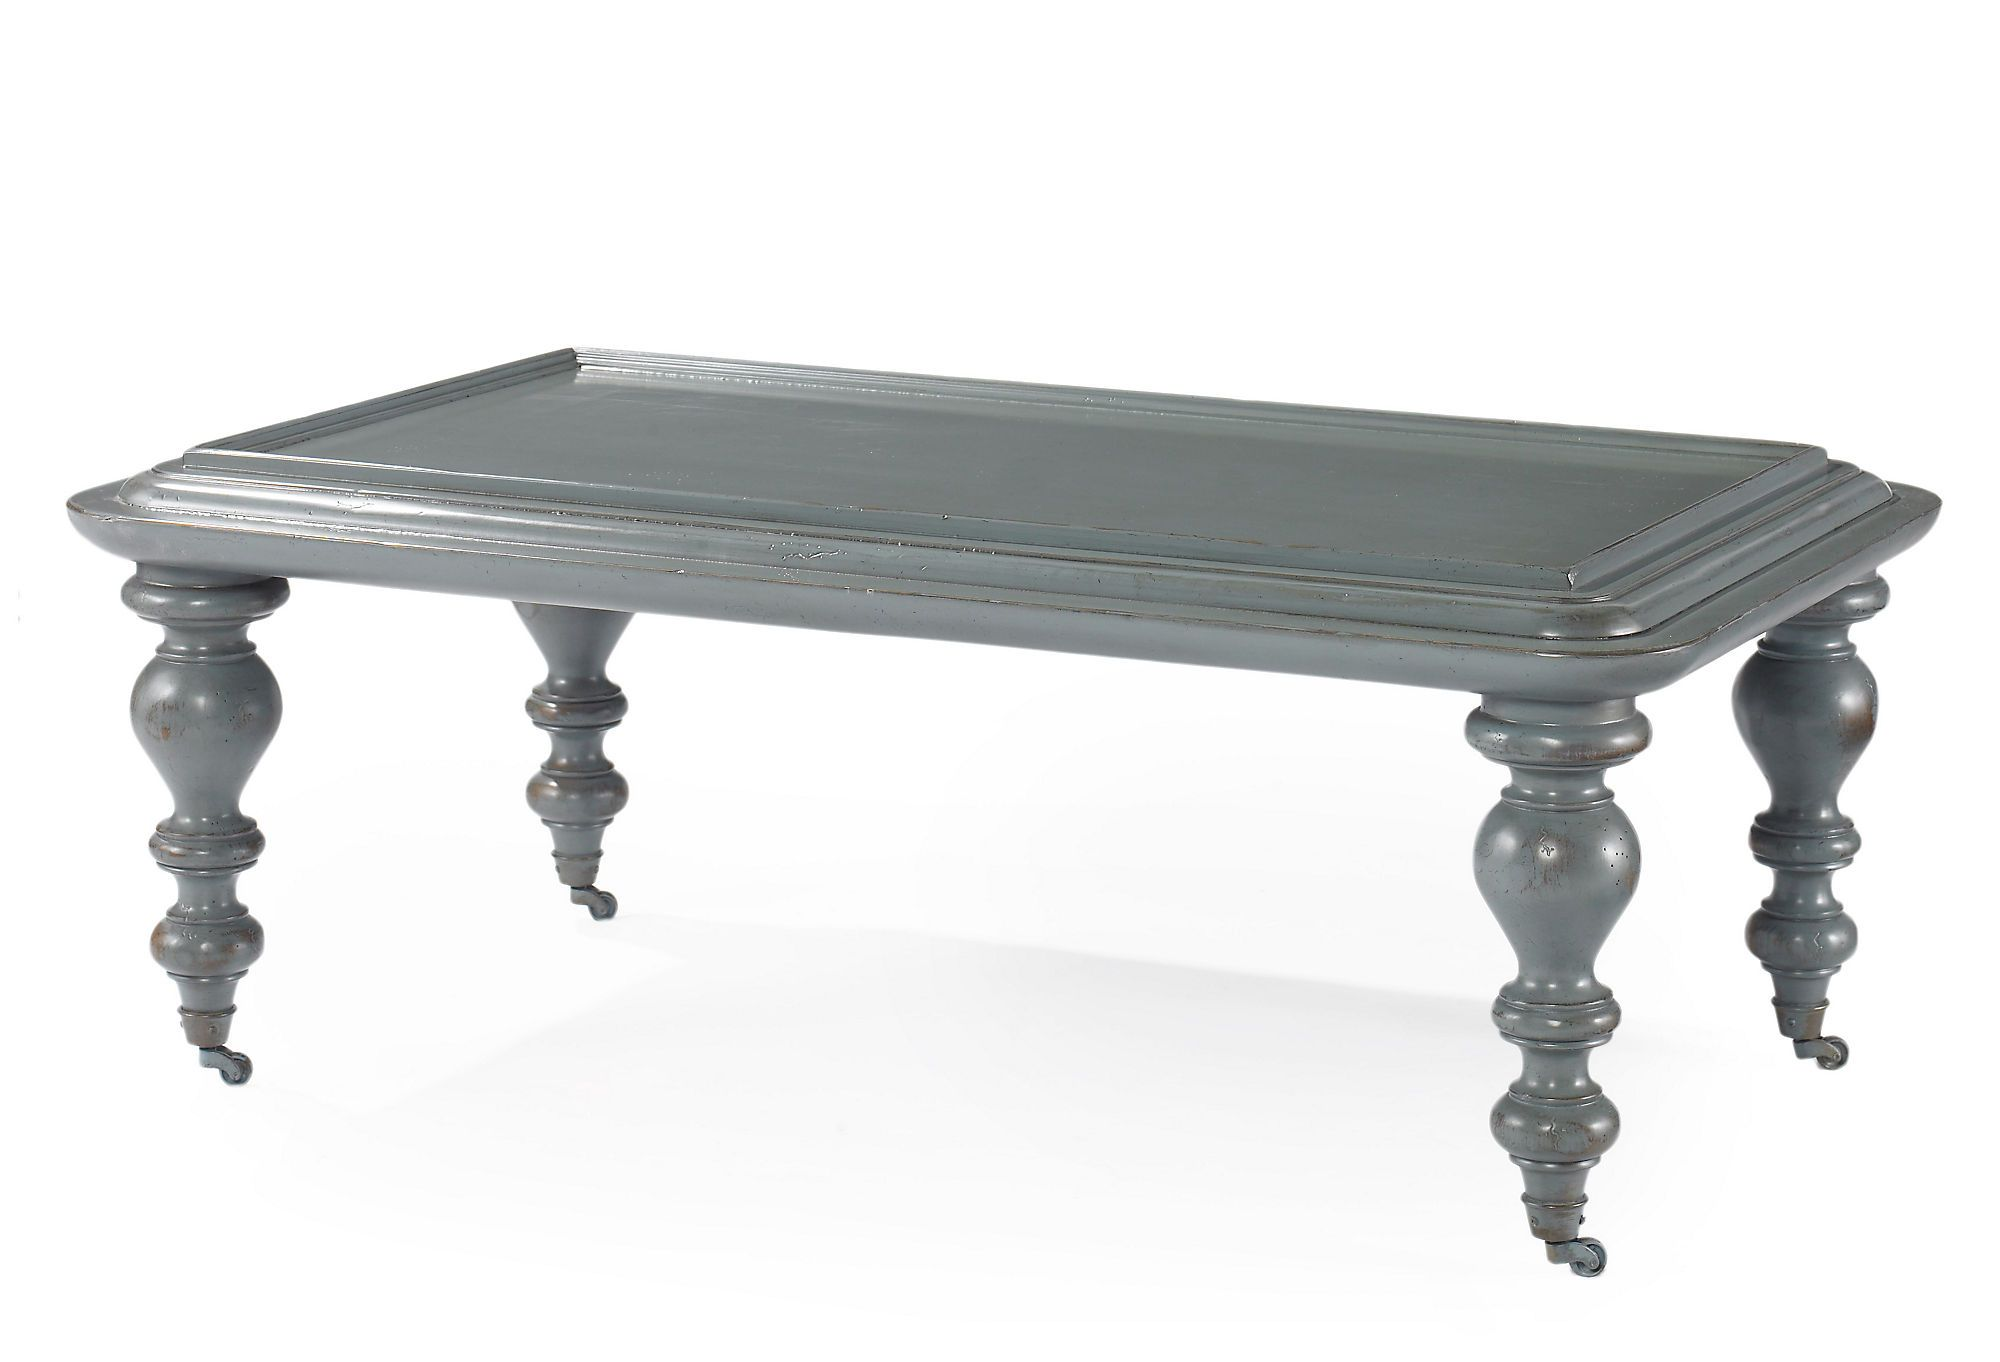 Baker coffee table Inspiring rooms